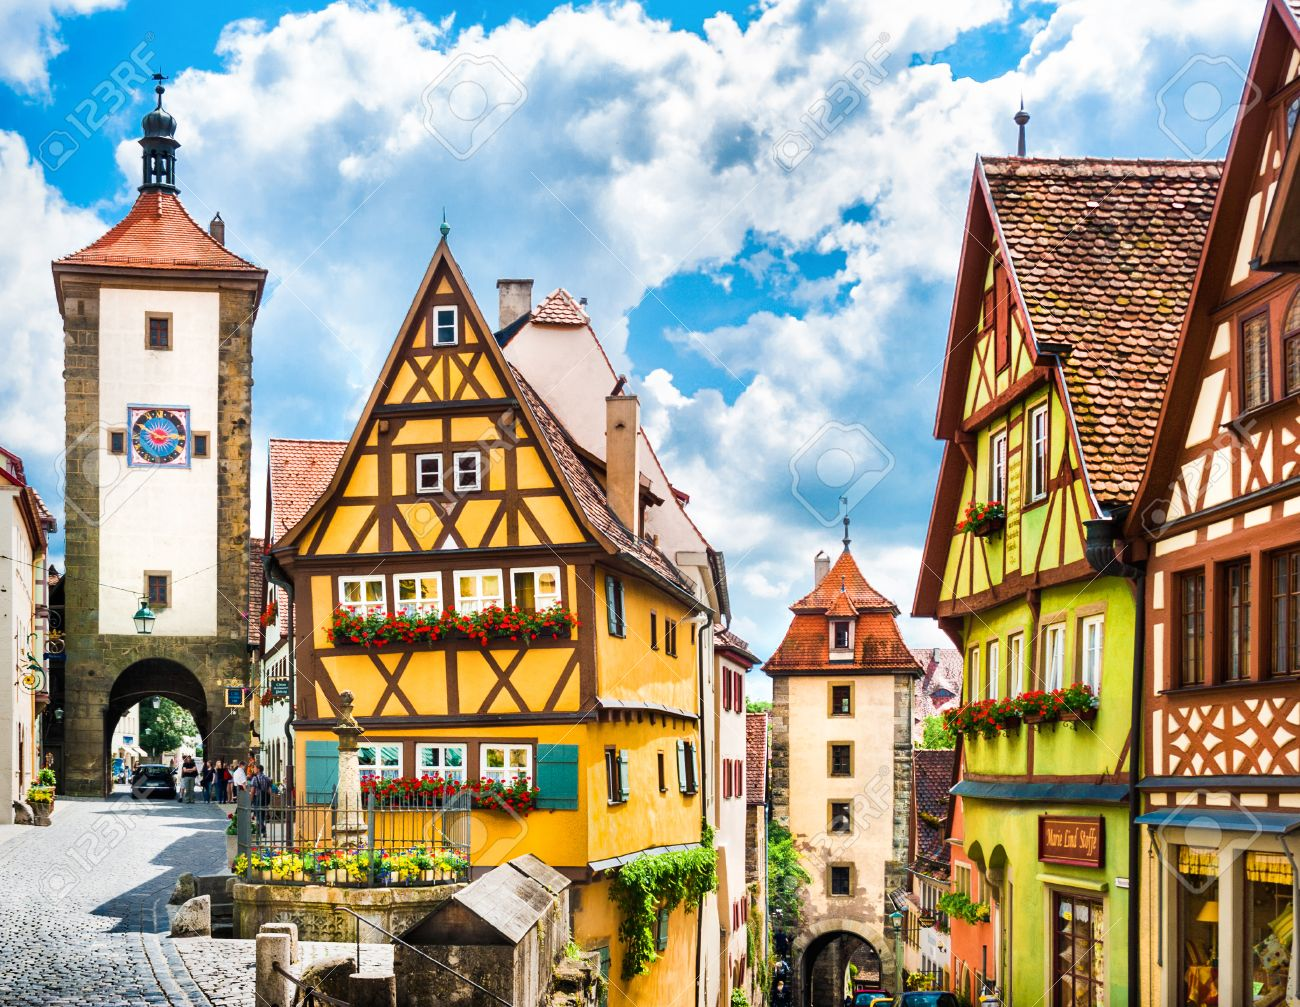 Historic town of Rothenburg ob der Tauber, Franconia, Bavaria, Germany Stock Photo - 31341853